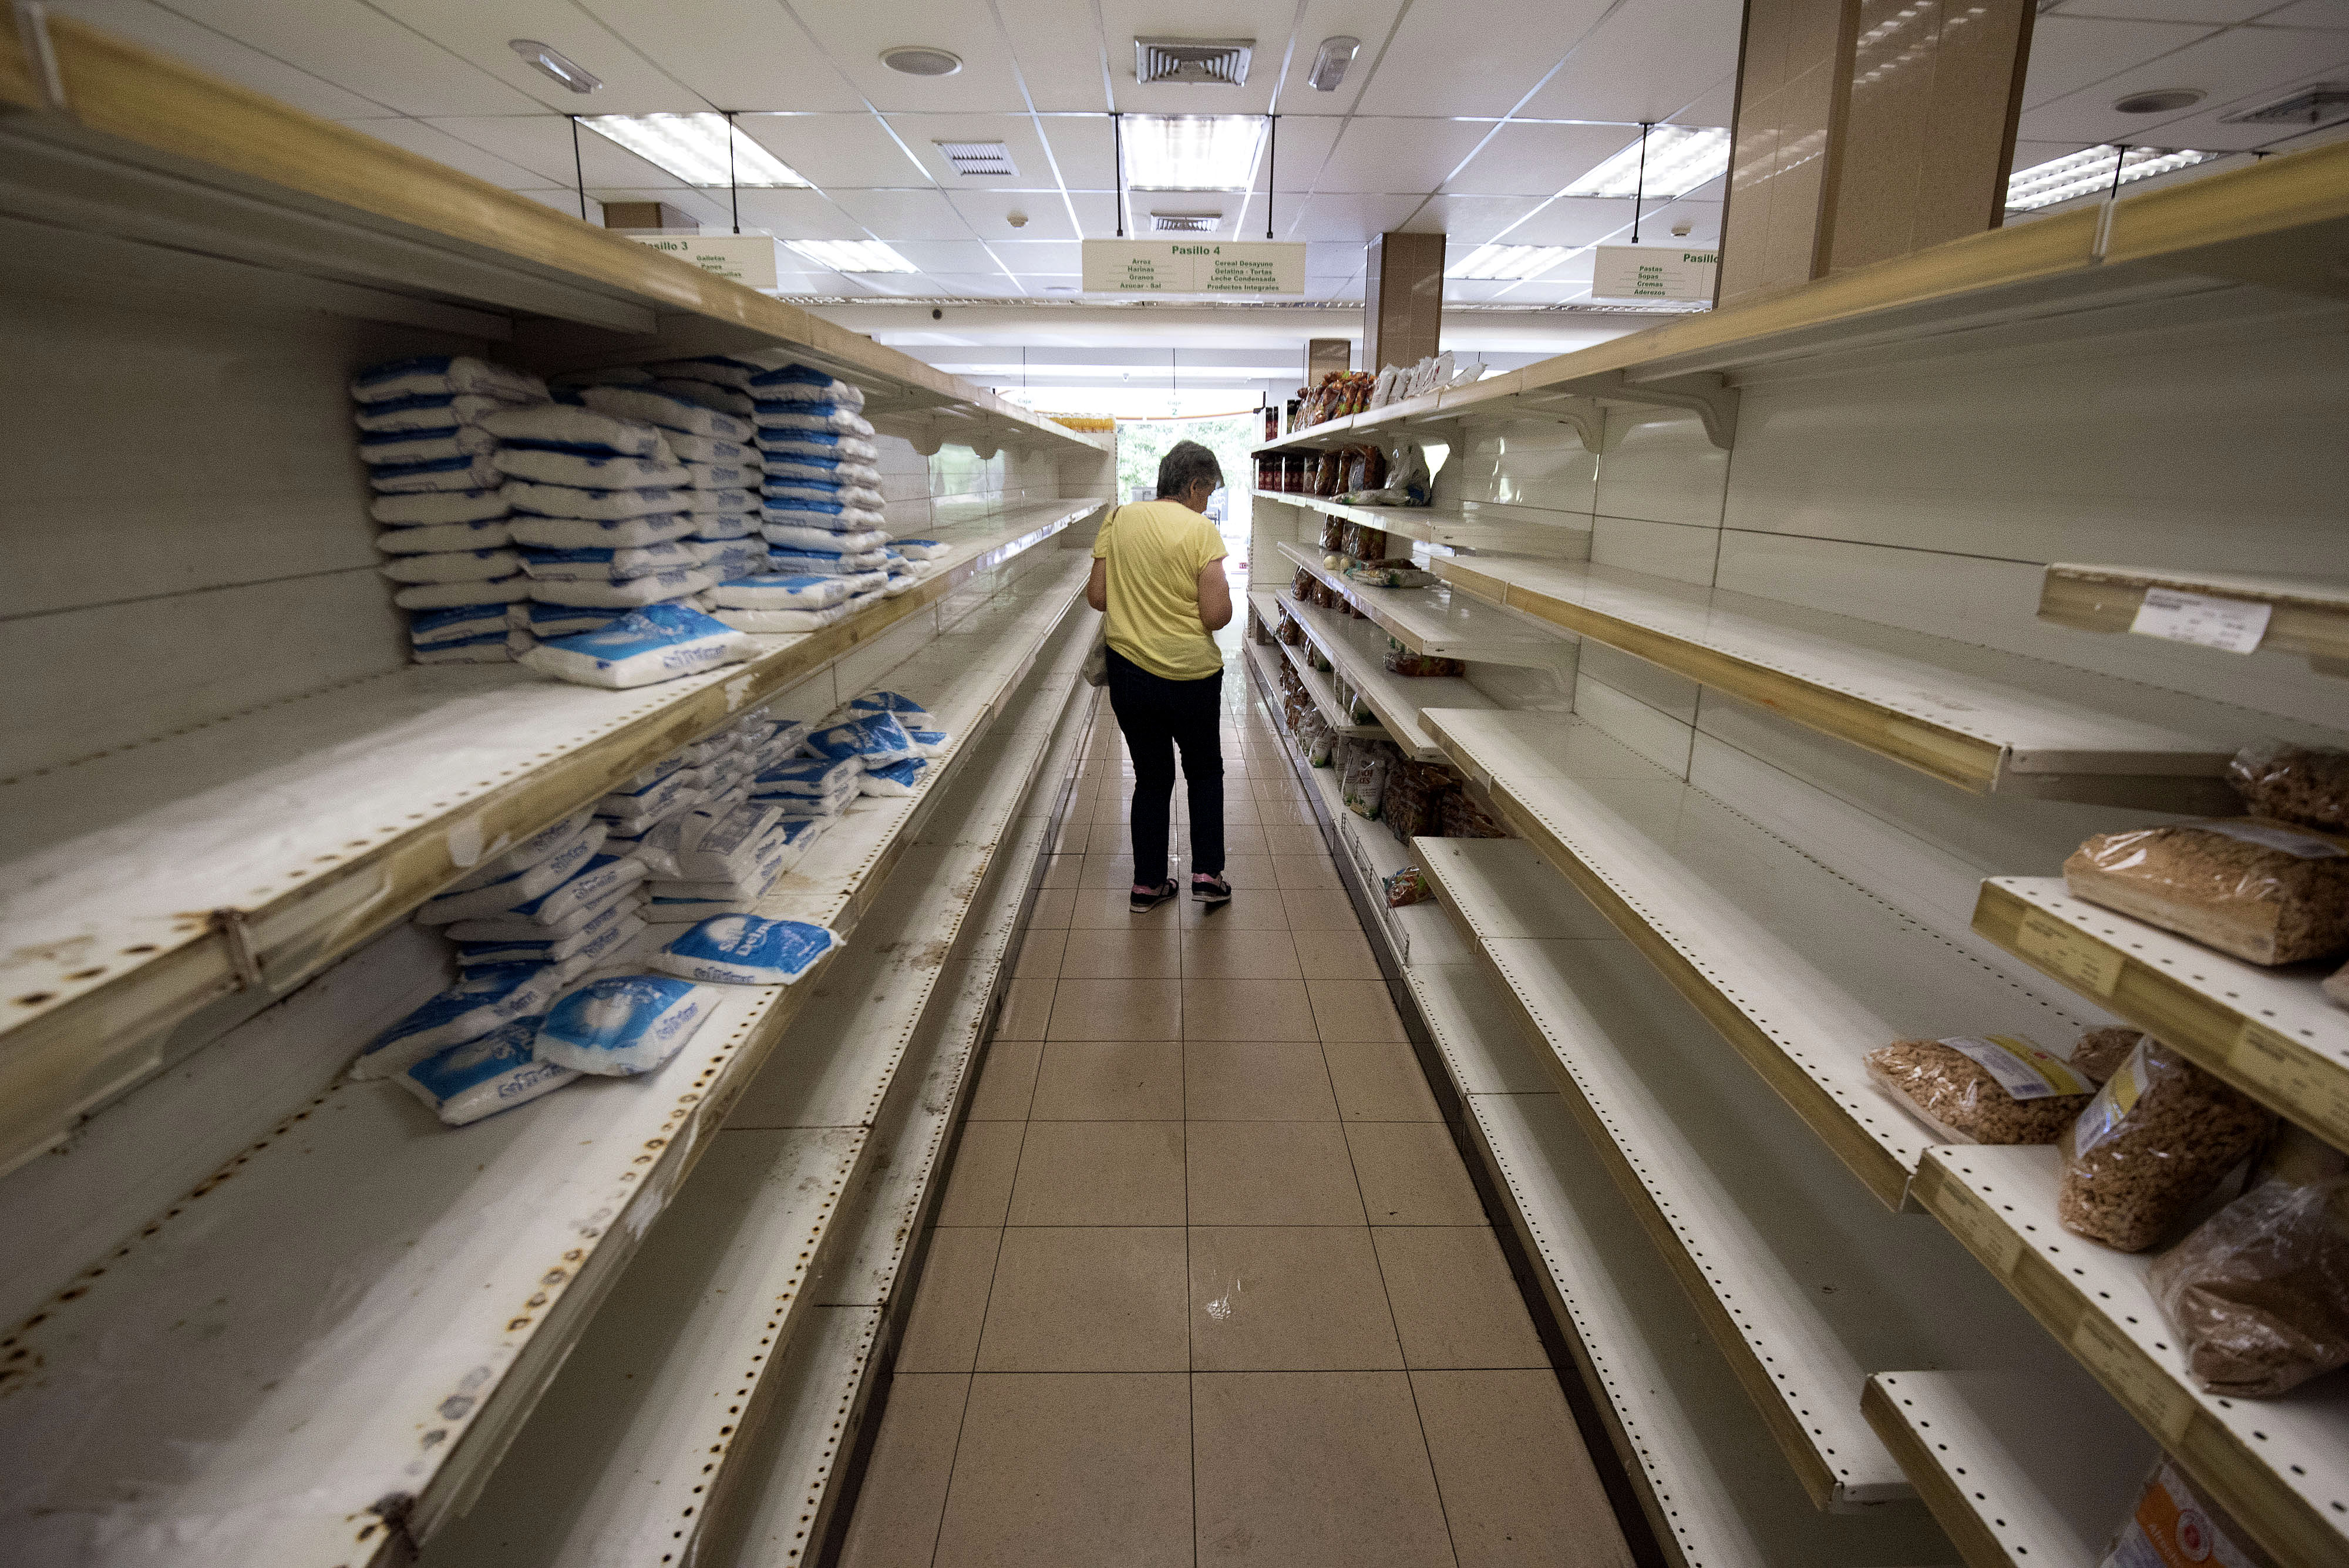 A customer shops for groceries at a supermarket in Caracas, Venezuela, on Tuesday, July 25, 2017. Venezuelans are stockpiling scarce food and water as tensions mount ahead of a widely criticized Sunday vote that President Nicolas Maduro has called to elect an assembly of supporters to rewrite the constitution and strengthen his grip on power. Photographer: Carlos Becerra/Bloomberg via Getty Images